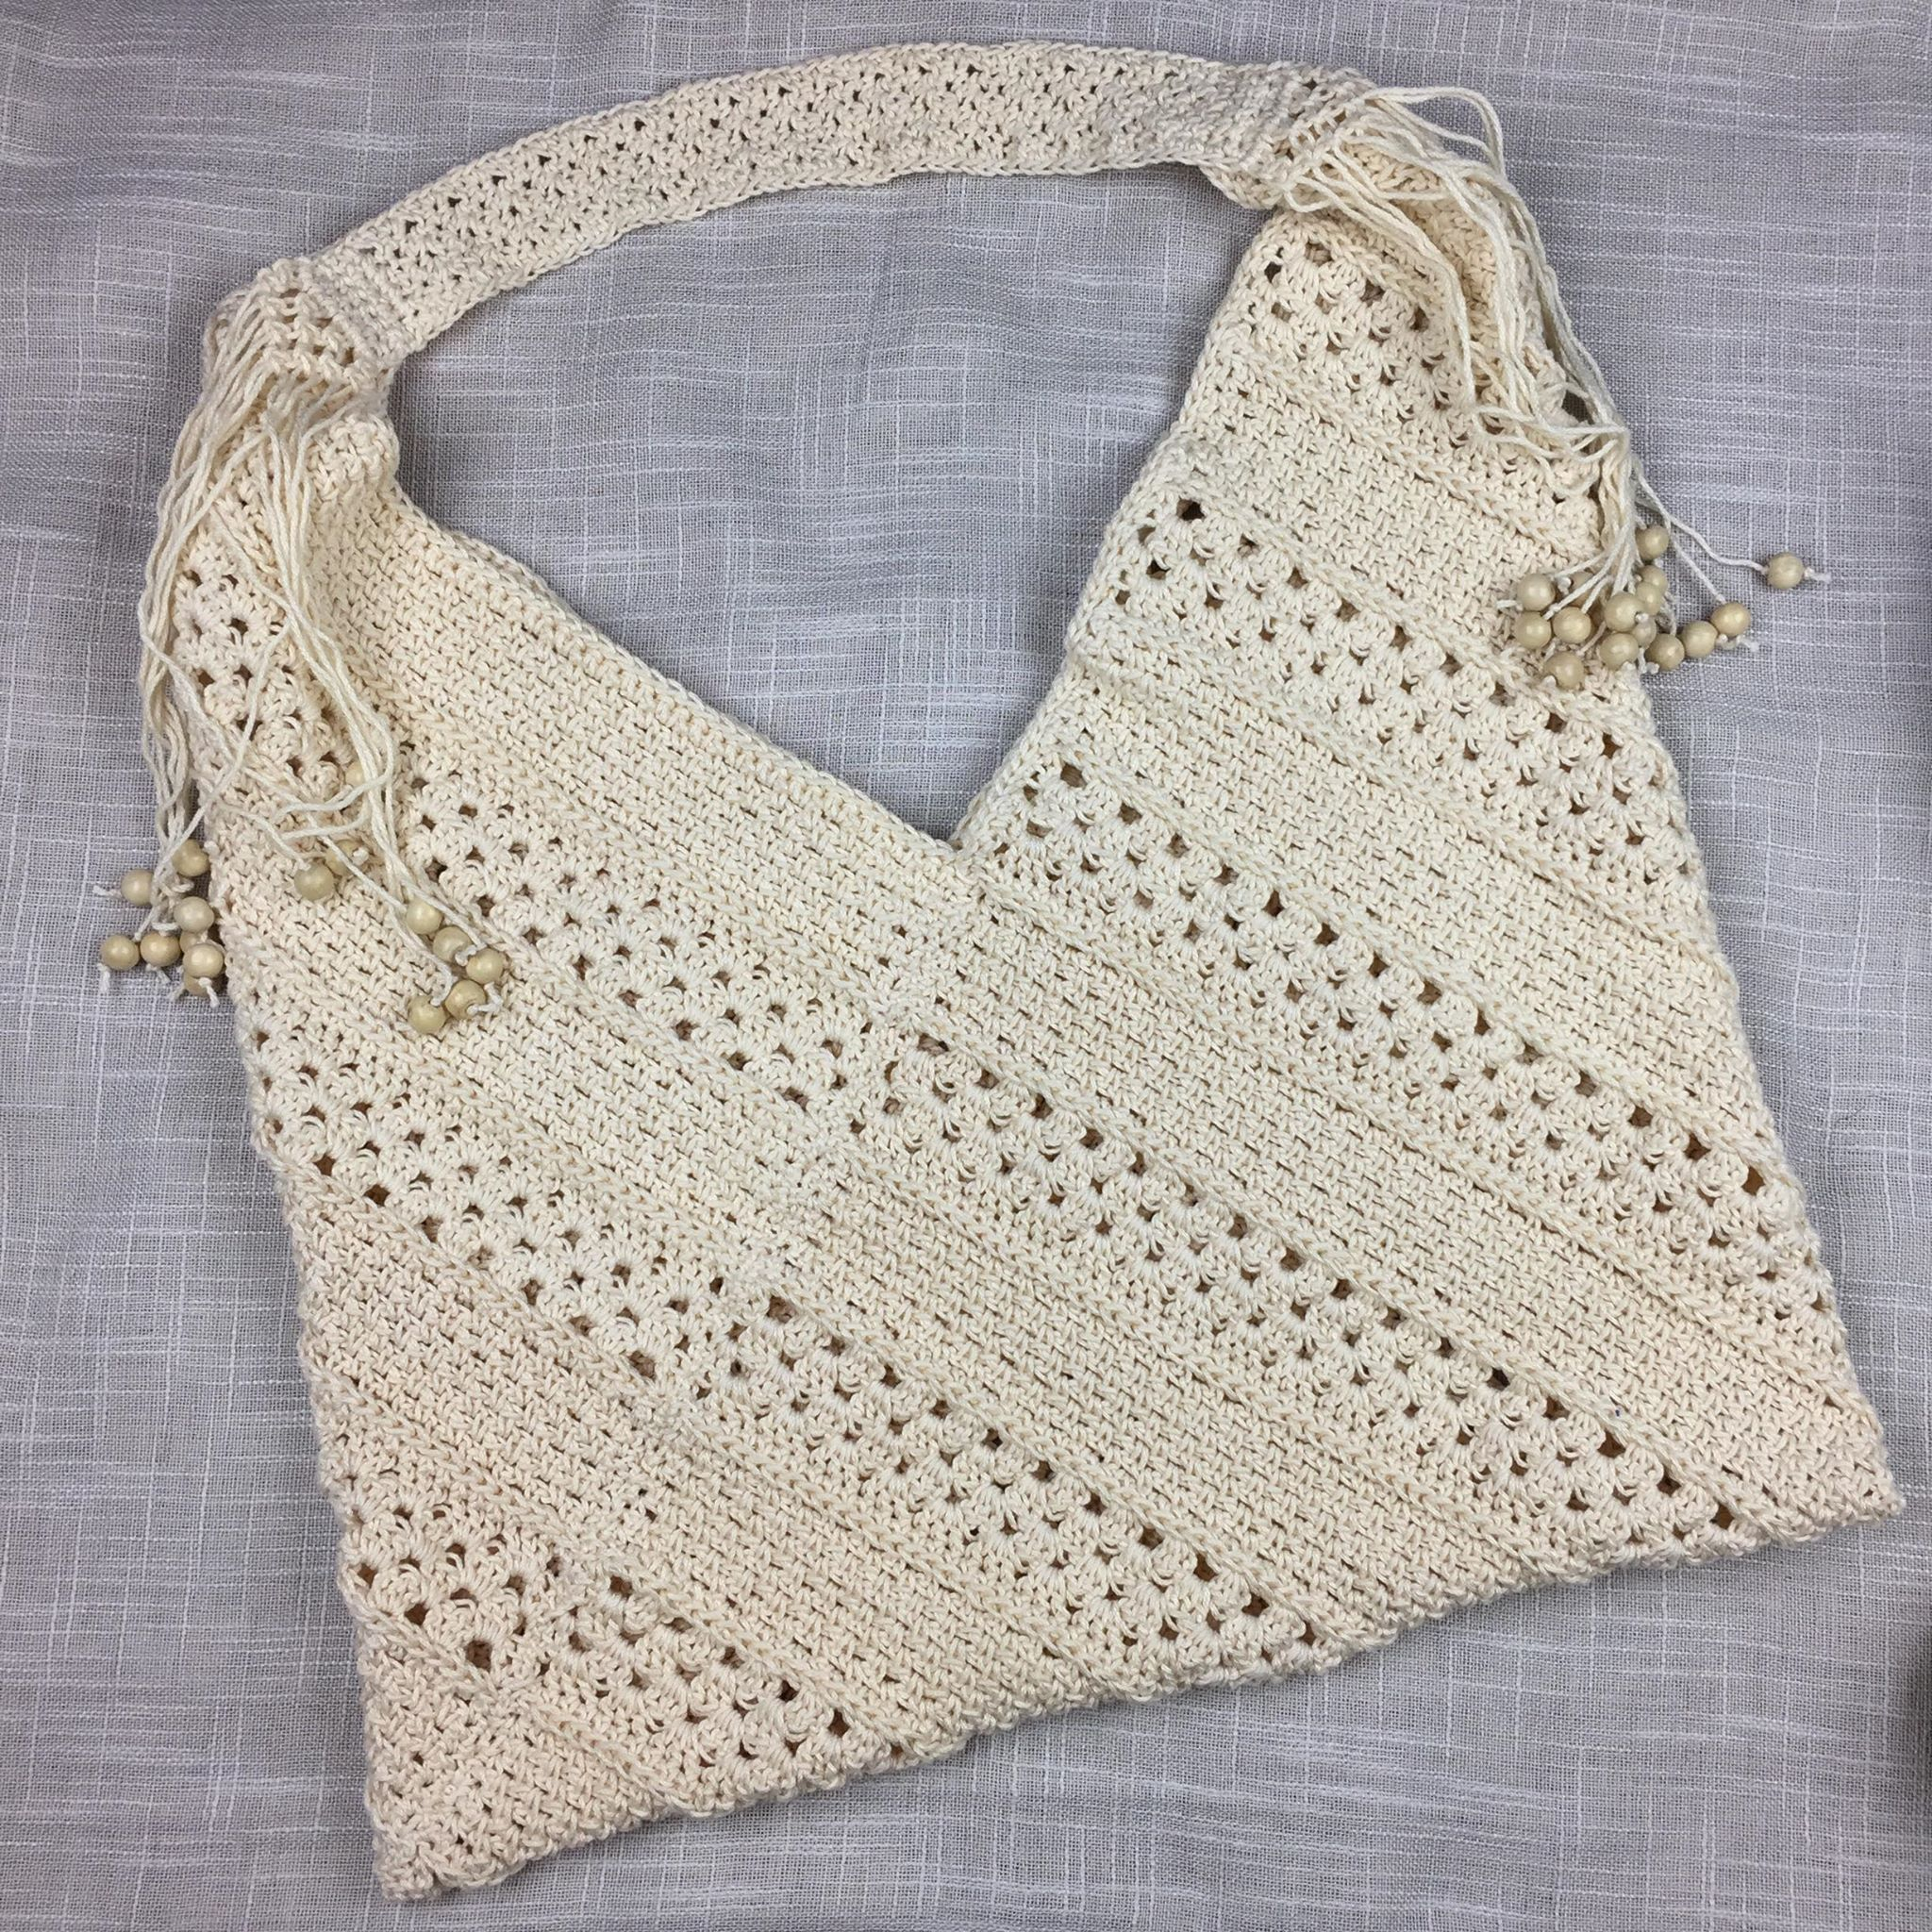 Free Crochet Tote Bag Pattern - On the Bias Tote Bag by A Crocheted Simplicity #crochetbag #crochetbagpattern #freecrochetbagpattern #freecrochetpattern #crochettotebag #crochetpattern